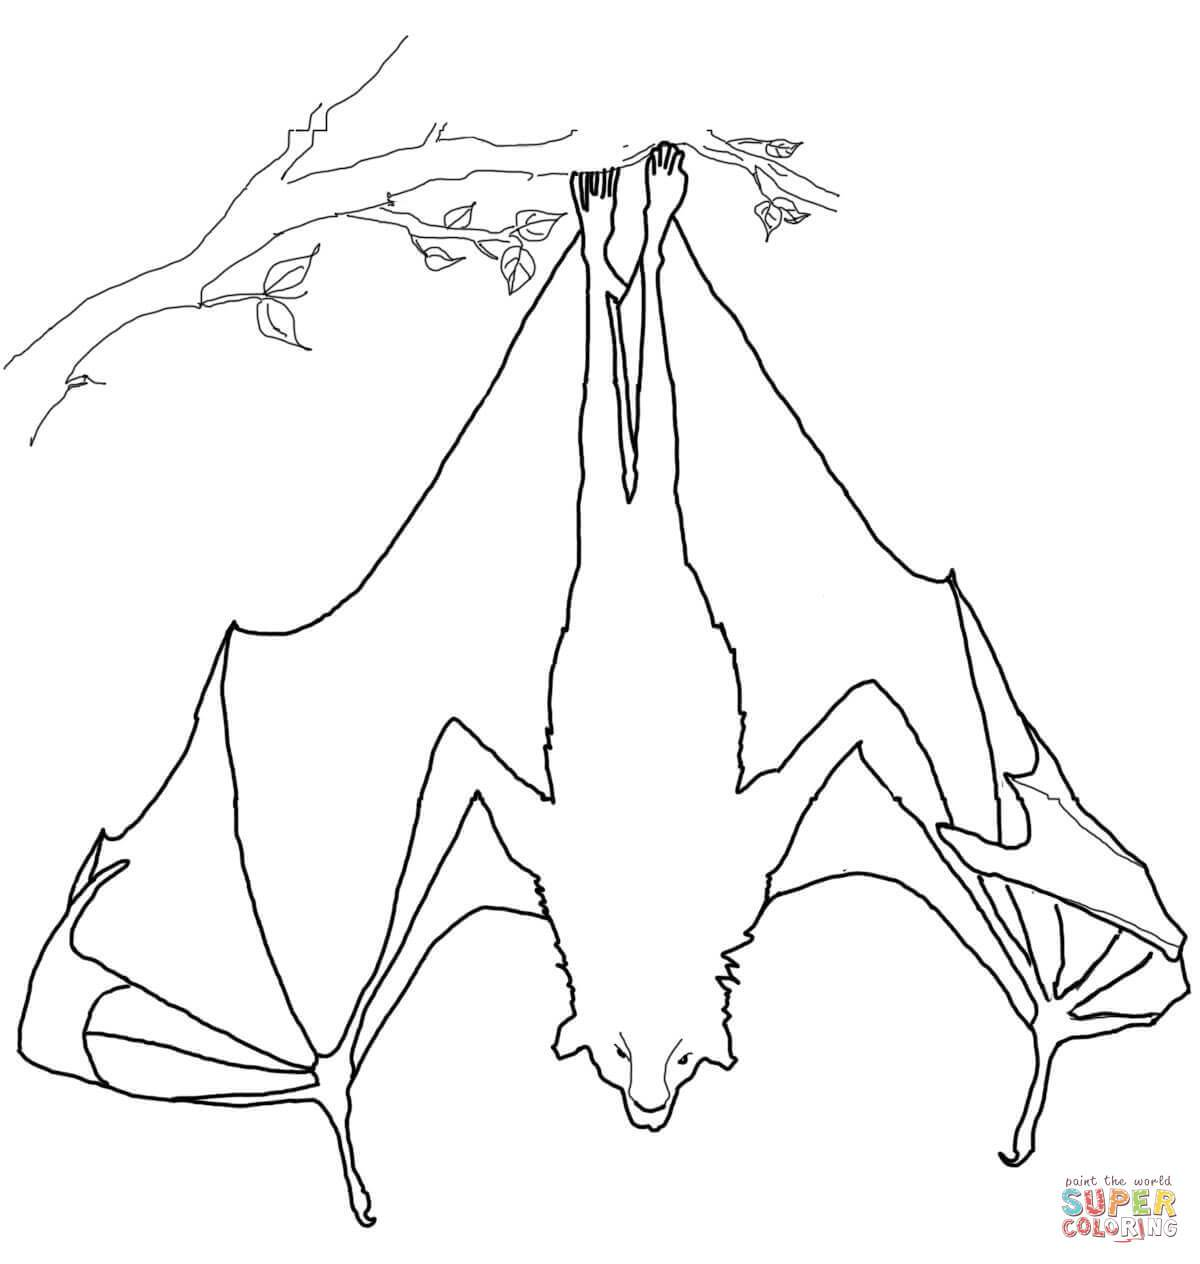 It is an image of Witty Upside Down Drawing Worksheet